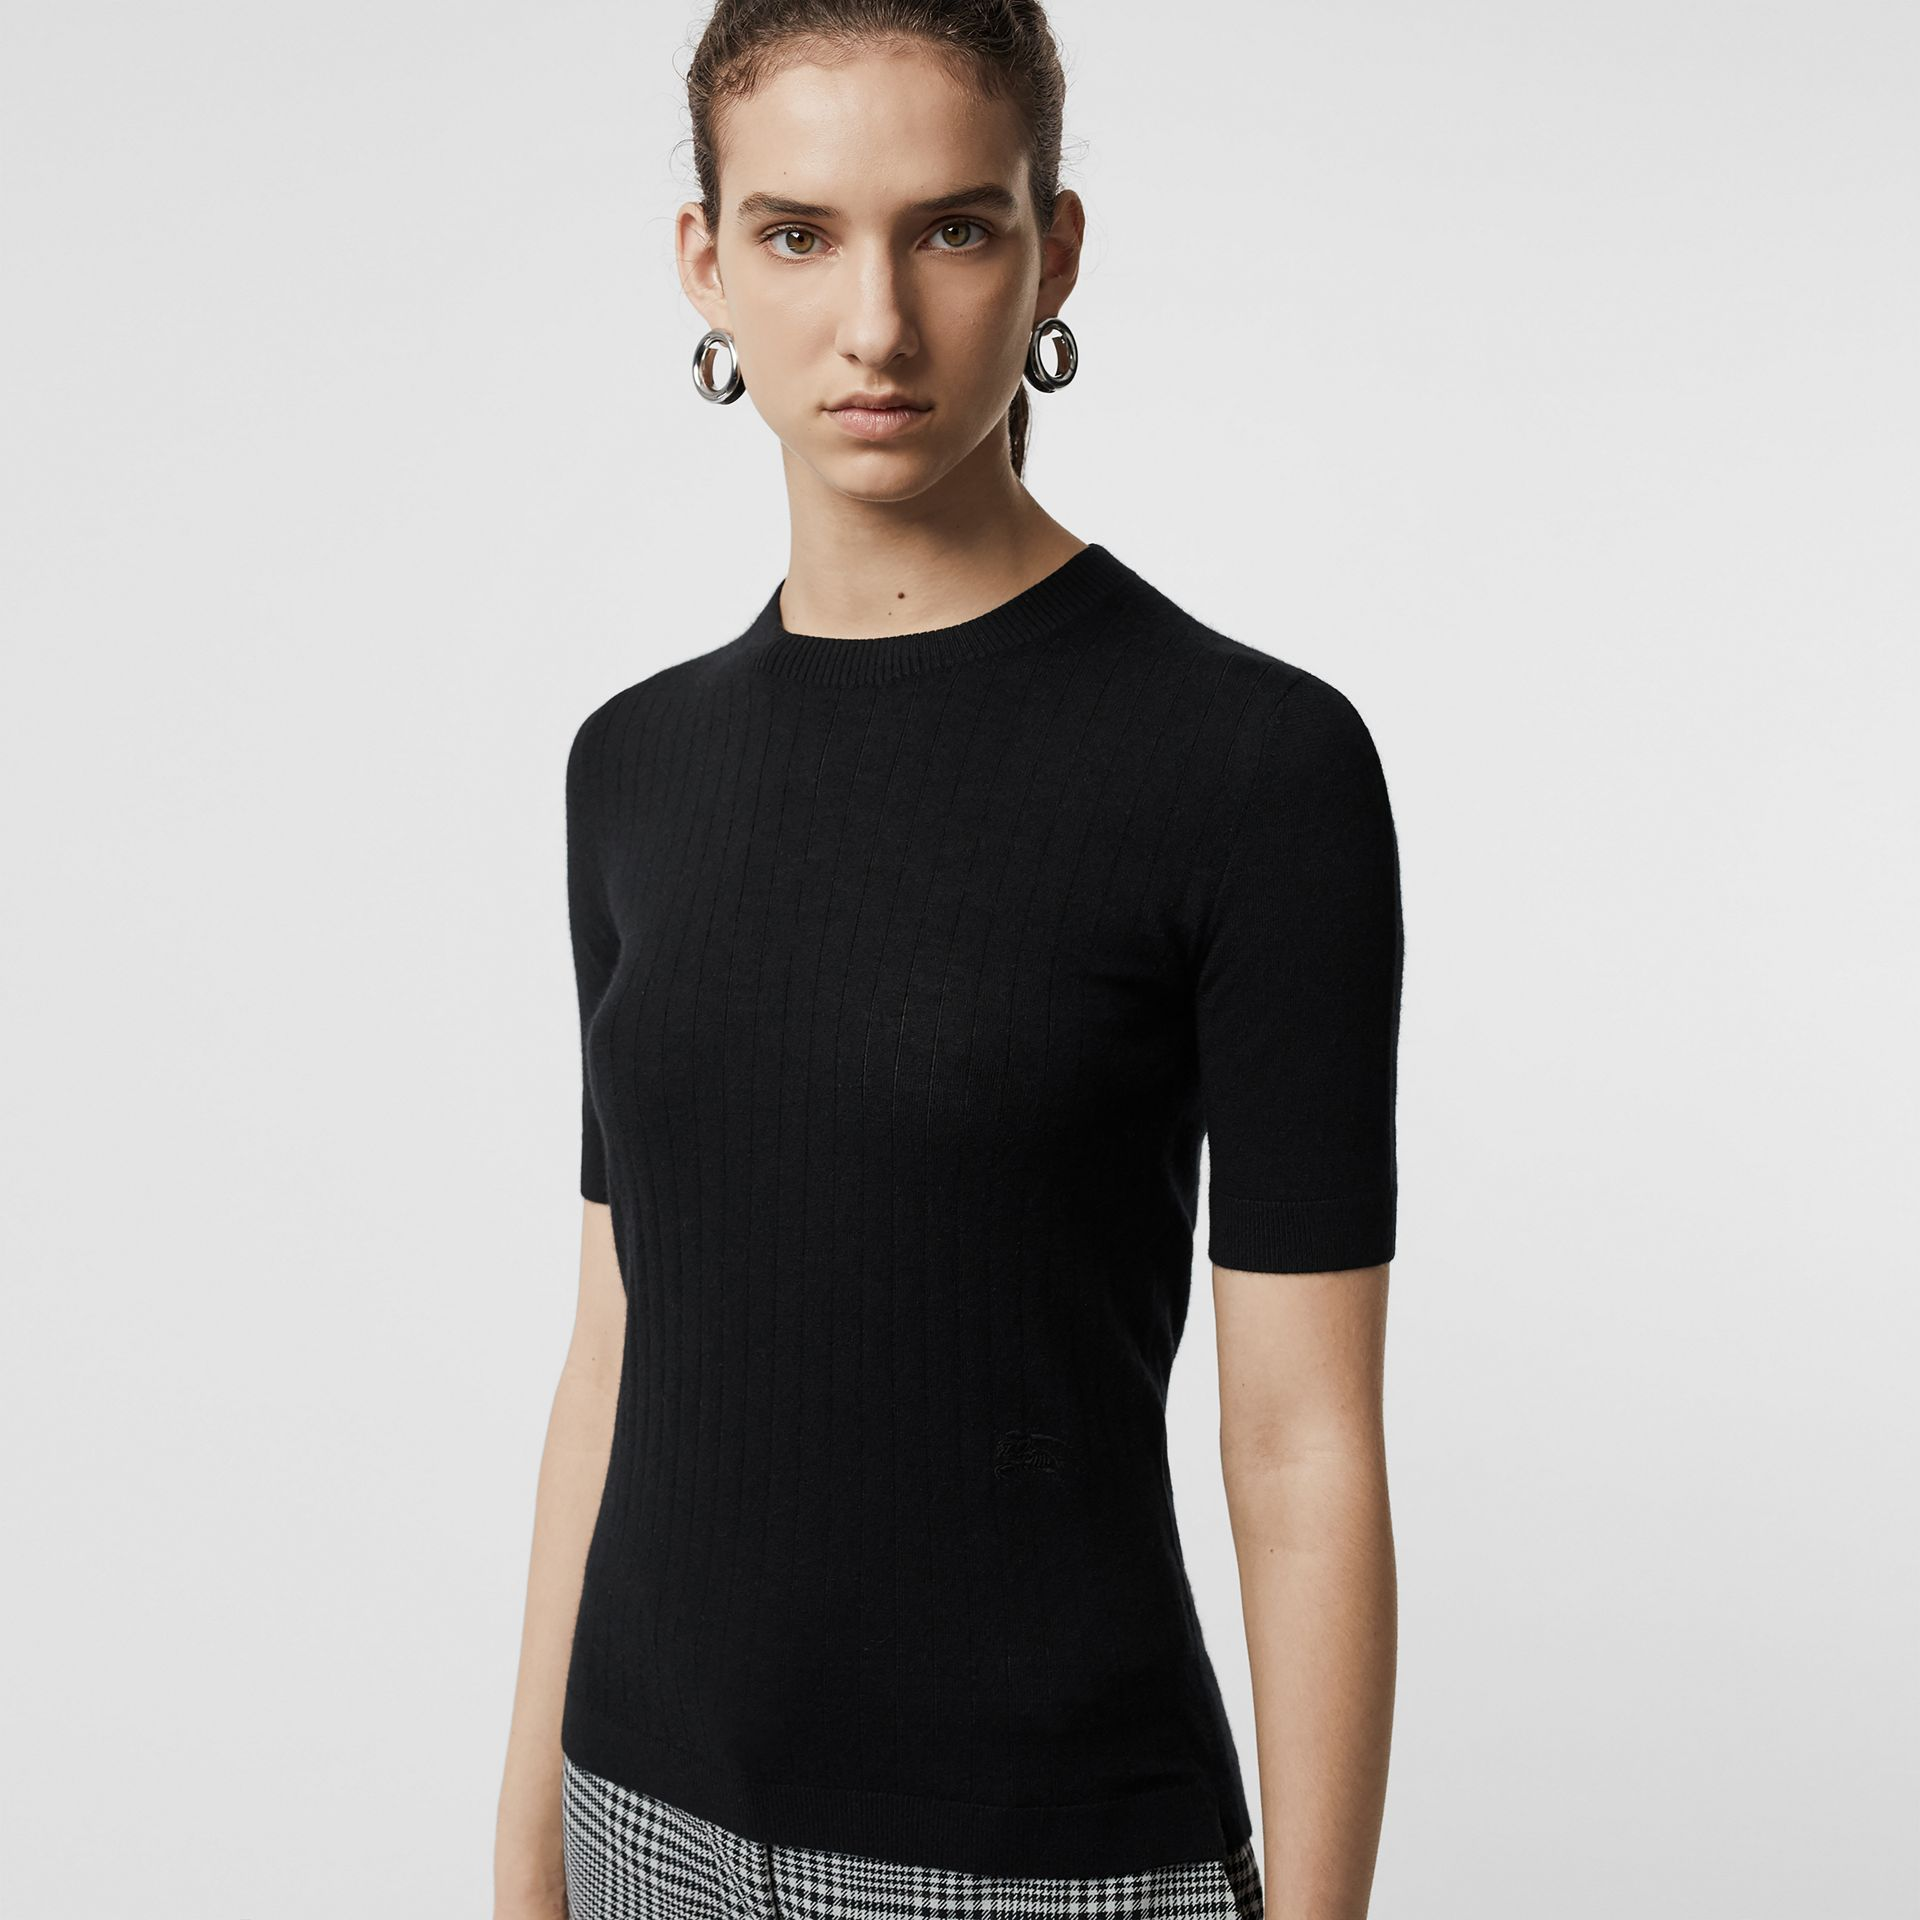 Short-sleeve Rib Knit Cashmere Sweater in Black - Women | Burberry Hong Kong - gallery image 1